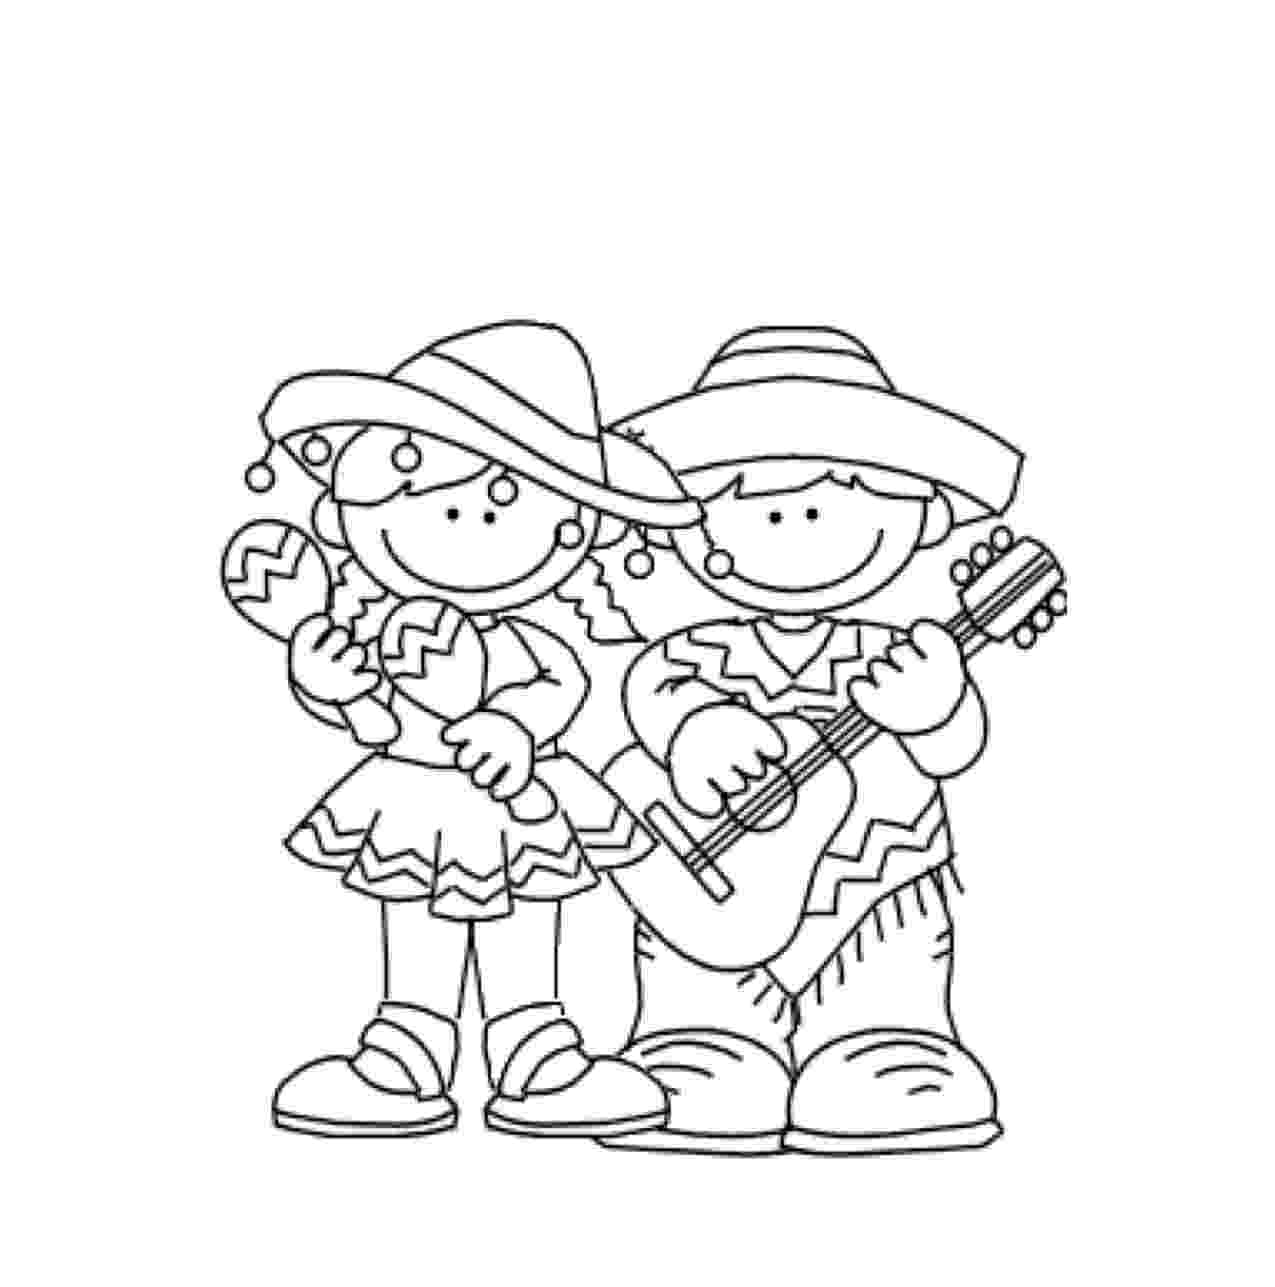 coloring pages for cinco de mayo coloring pages for cinco de mayo de for mayo coloring pages cinco